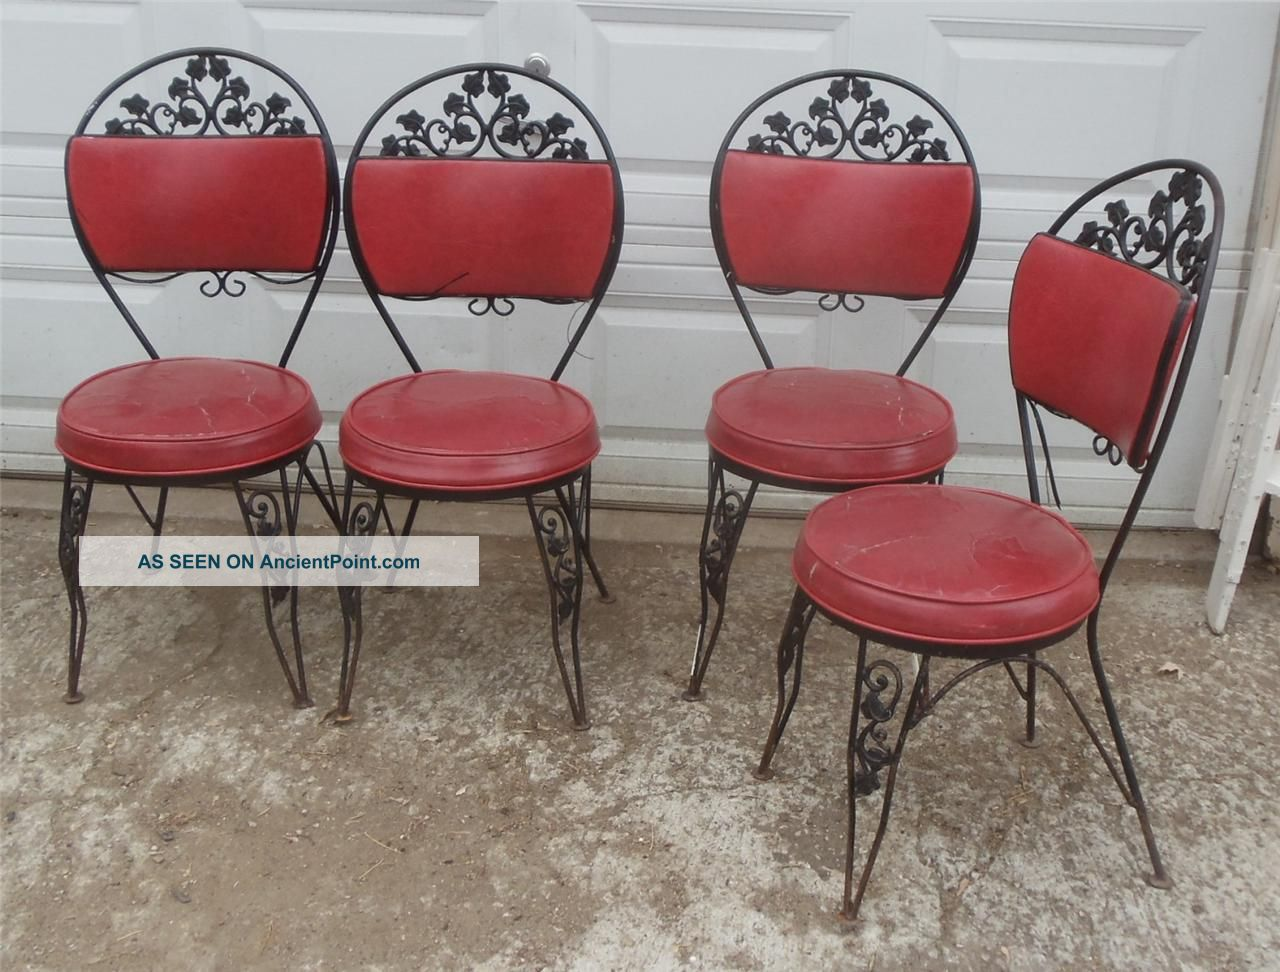 Vtg Antique Wrought Iron Padded Patio Parlor Kitchen Dining Chairs Mid Century Post-1950 photo